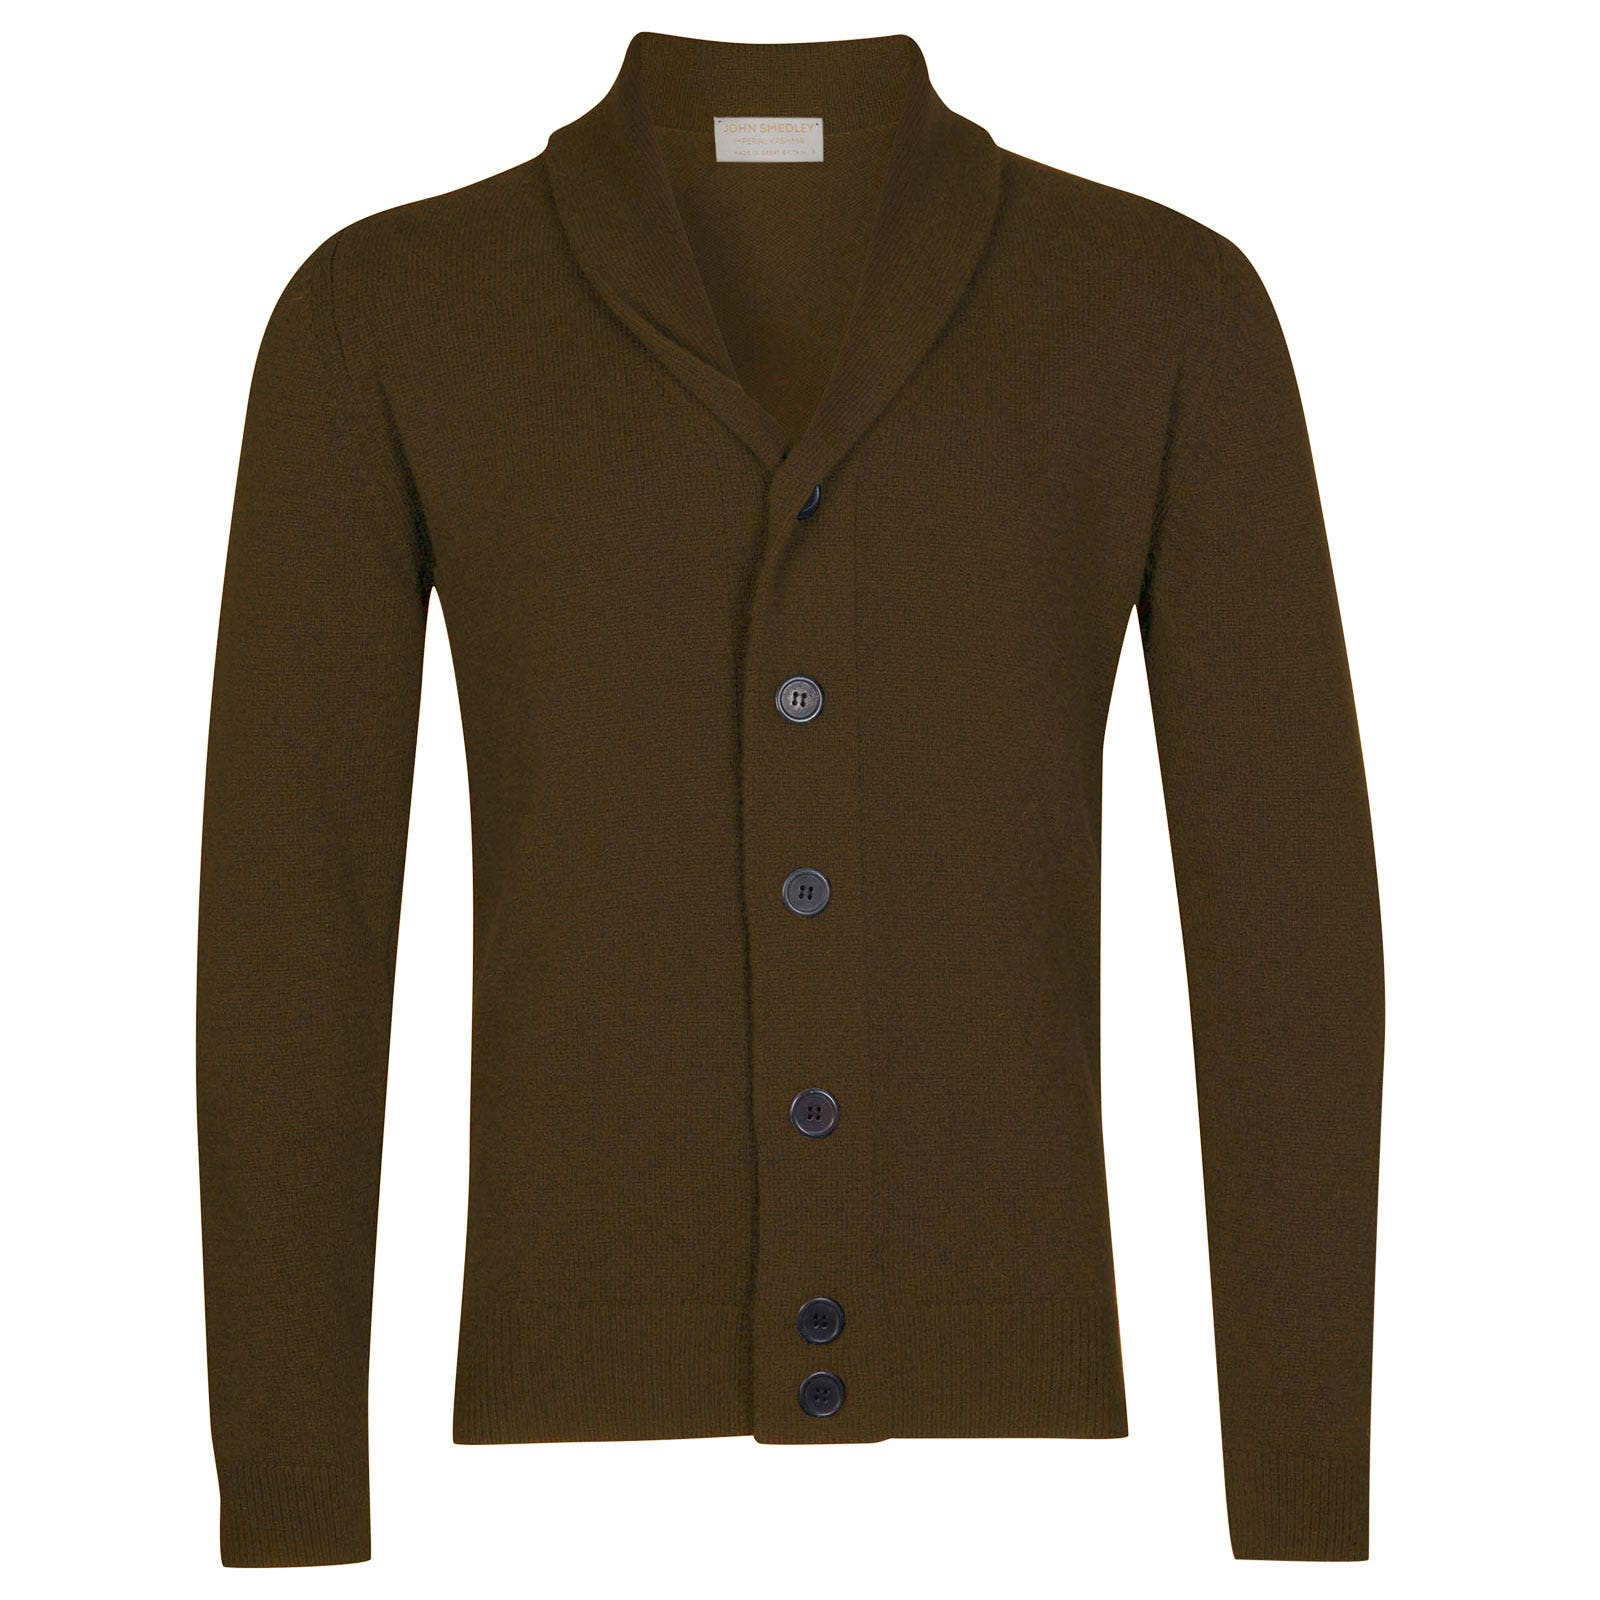 John Smedley patterson Wool and Cashmere Jacket in Kielder Green-XL